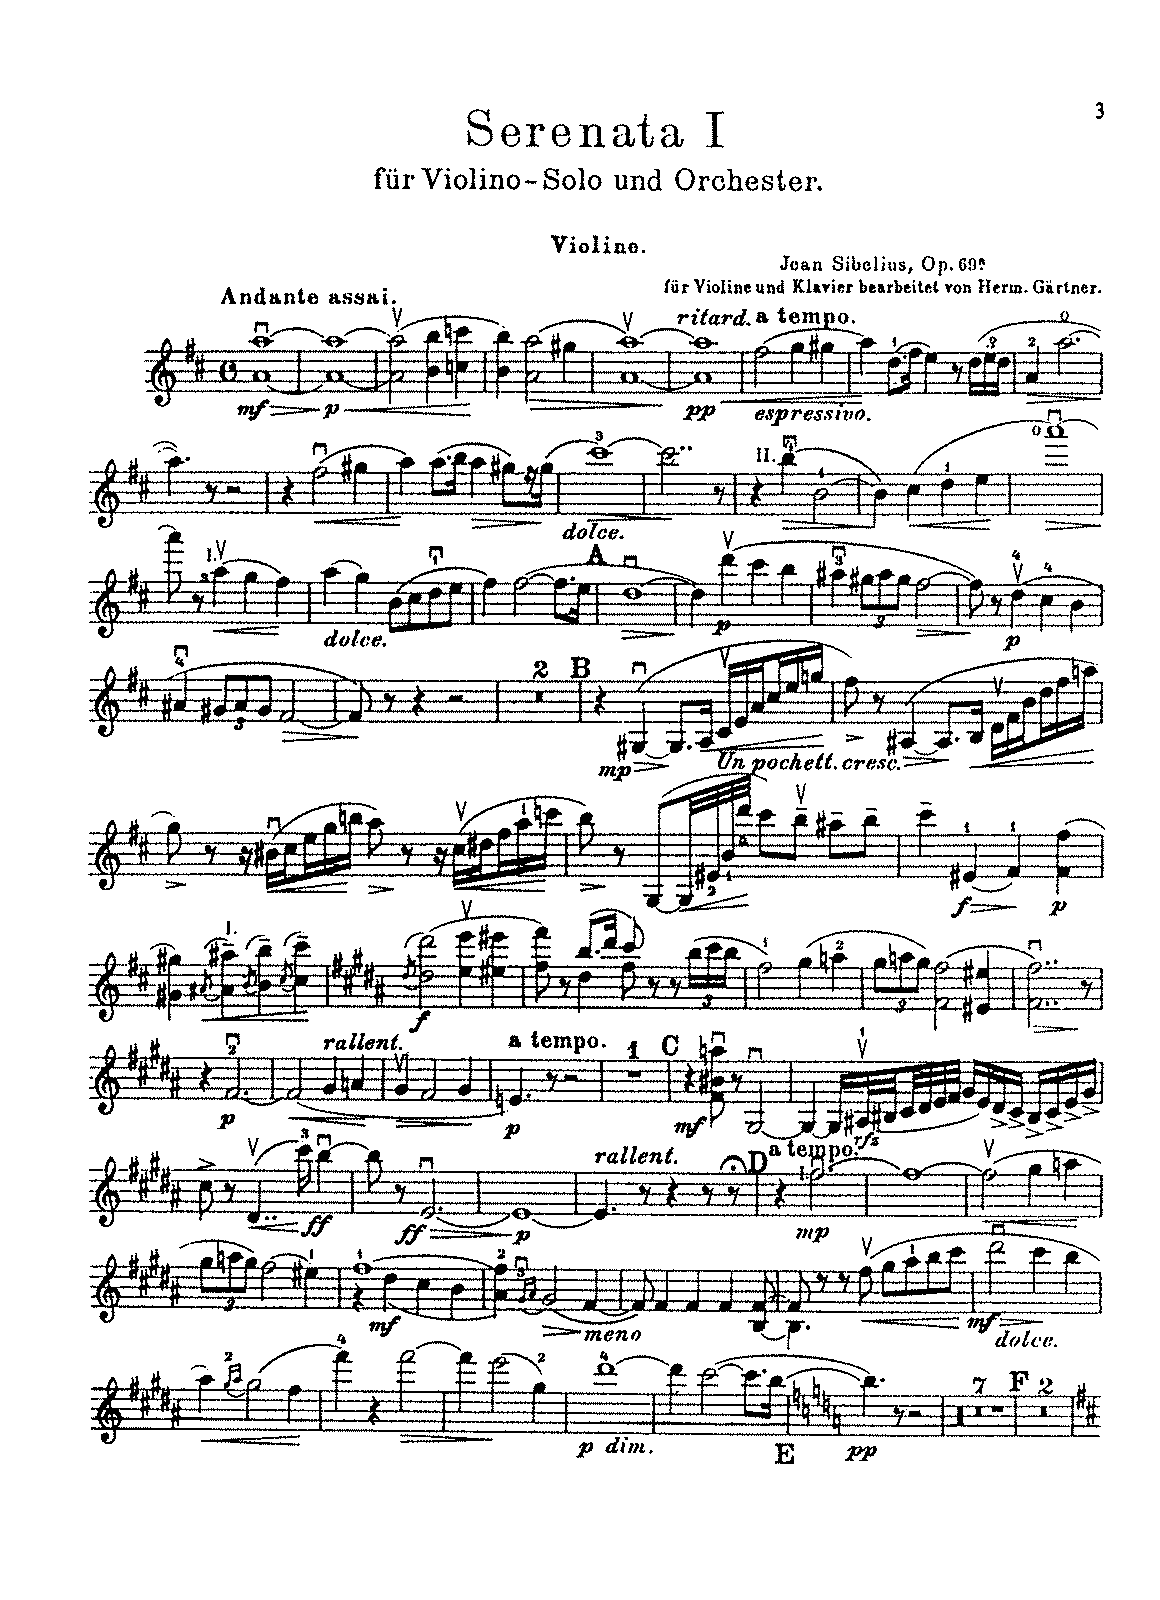 Sibelius - 2 Serenades for Violin and Orchestra, Op.69 (arr. Gärtner - violin and piano).pdf